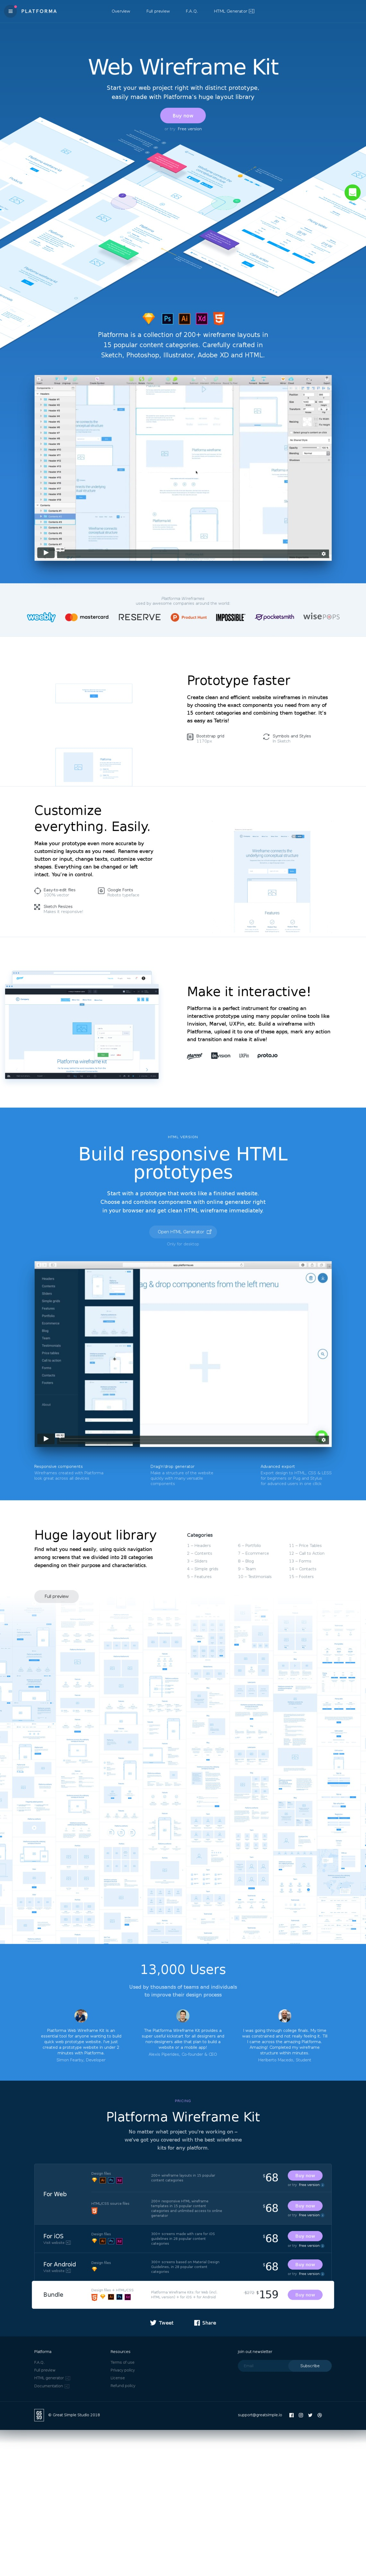 Platforma Web Wireframe Kit